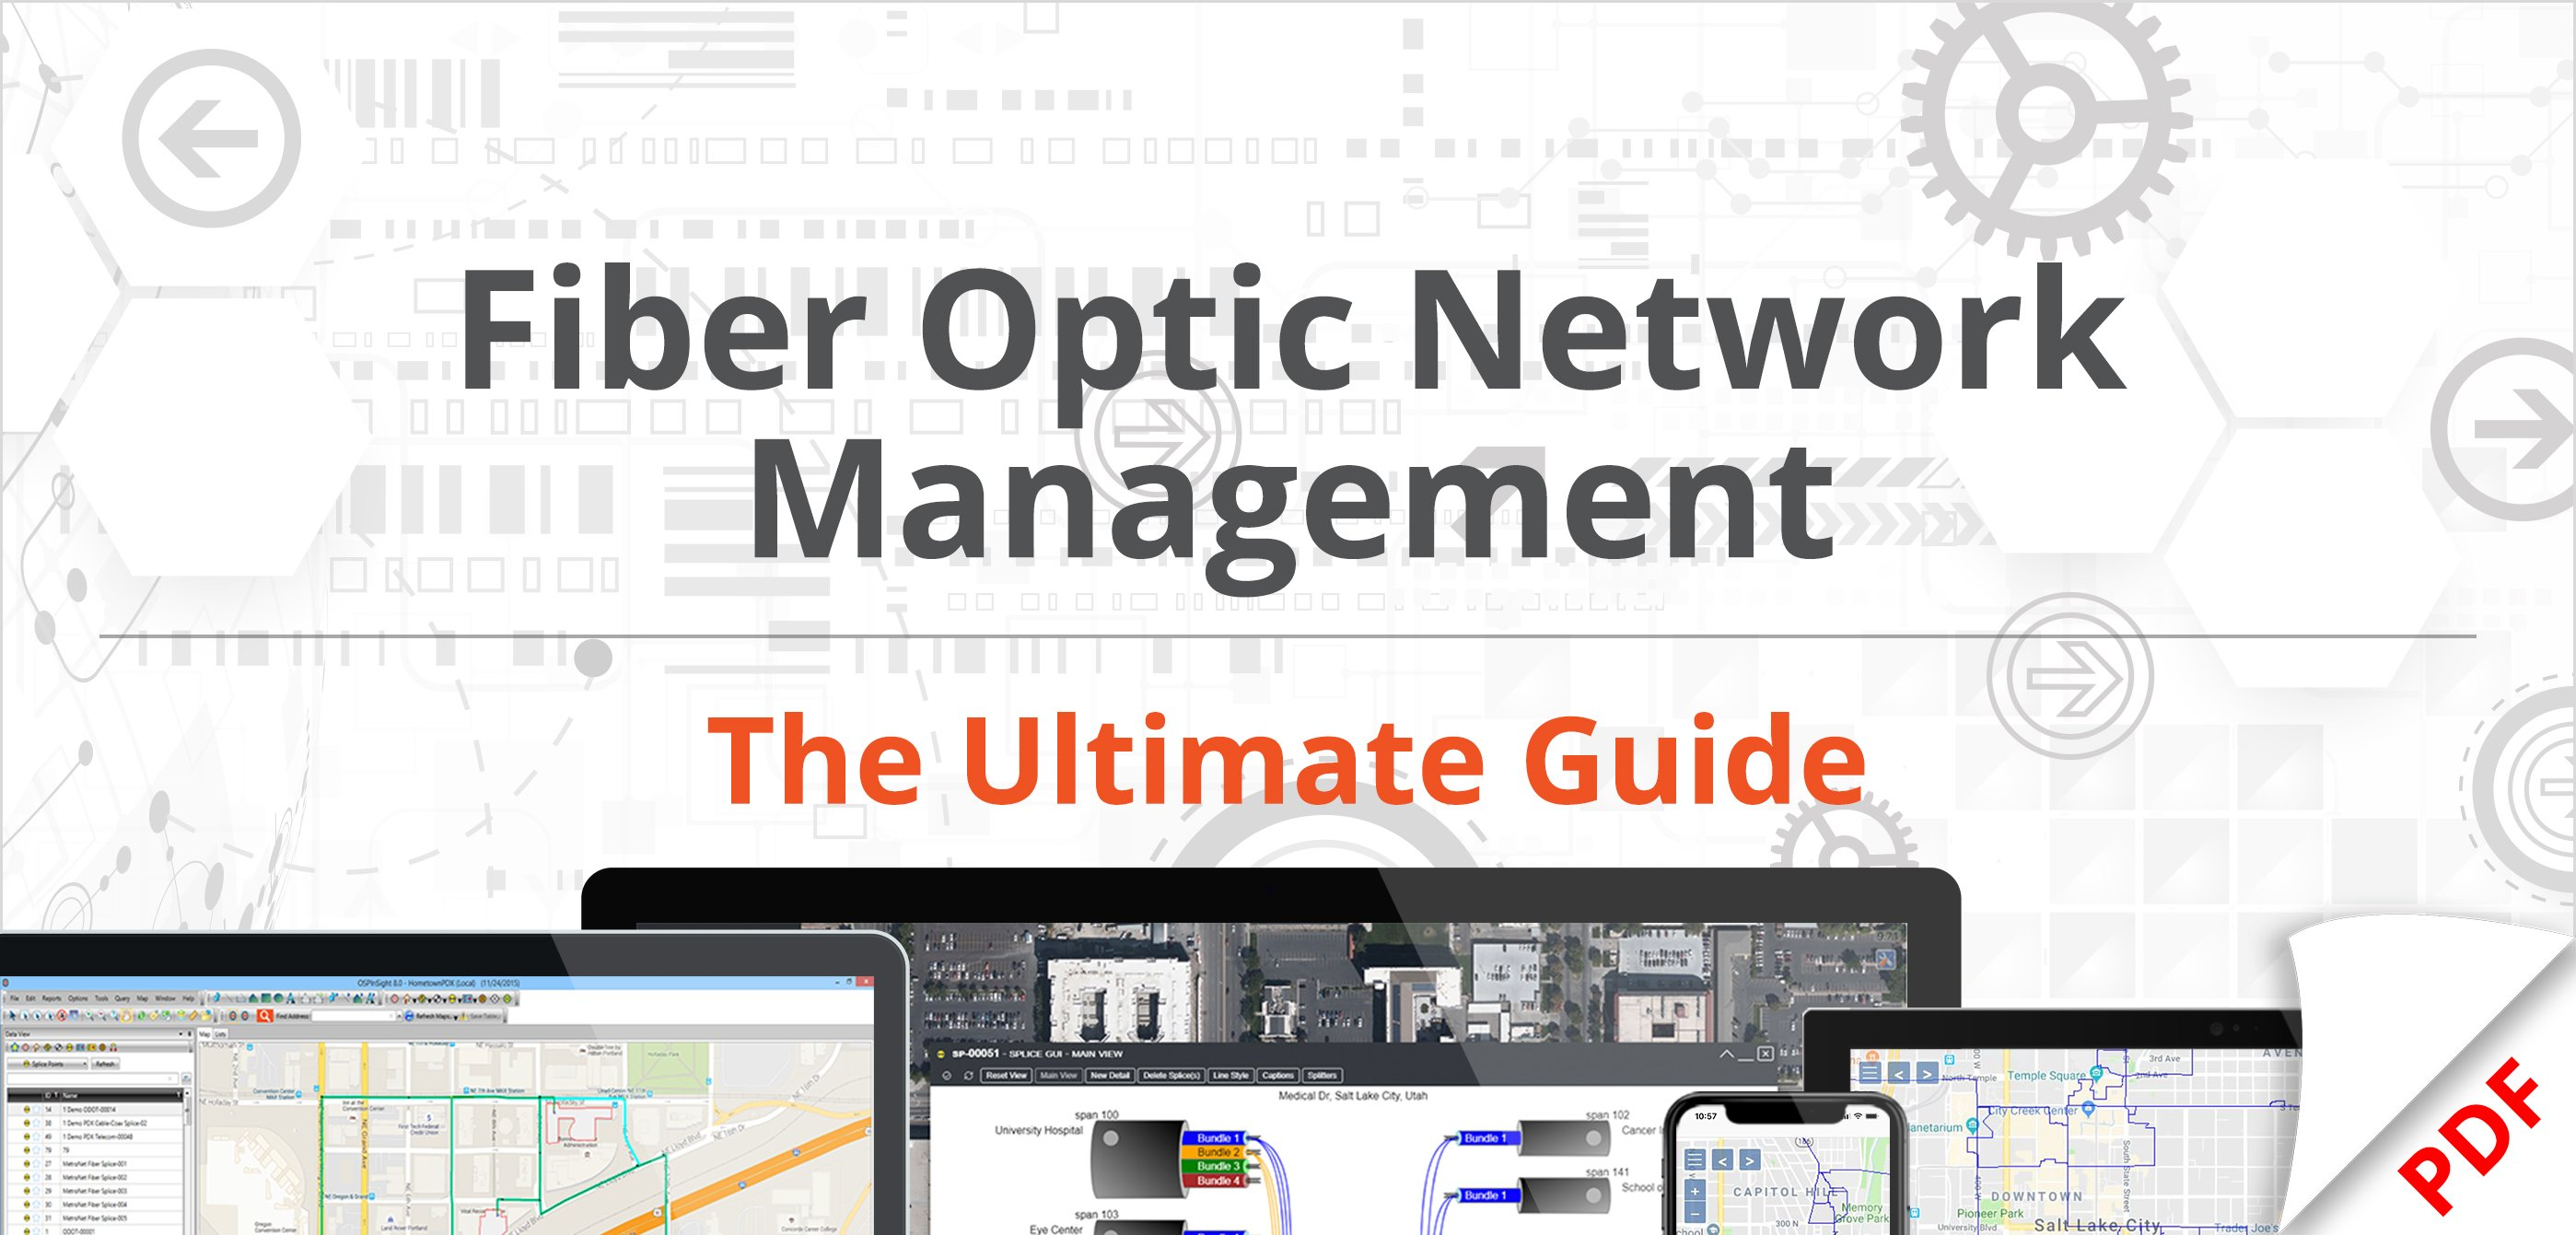 Download - Fiber Optic Network Management - Landing Page (featured image) (02.01)